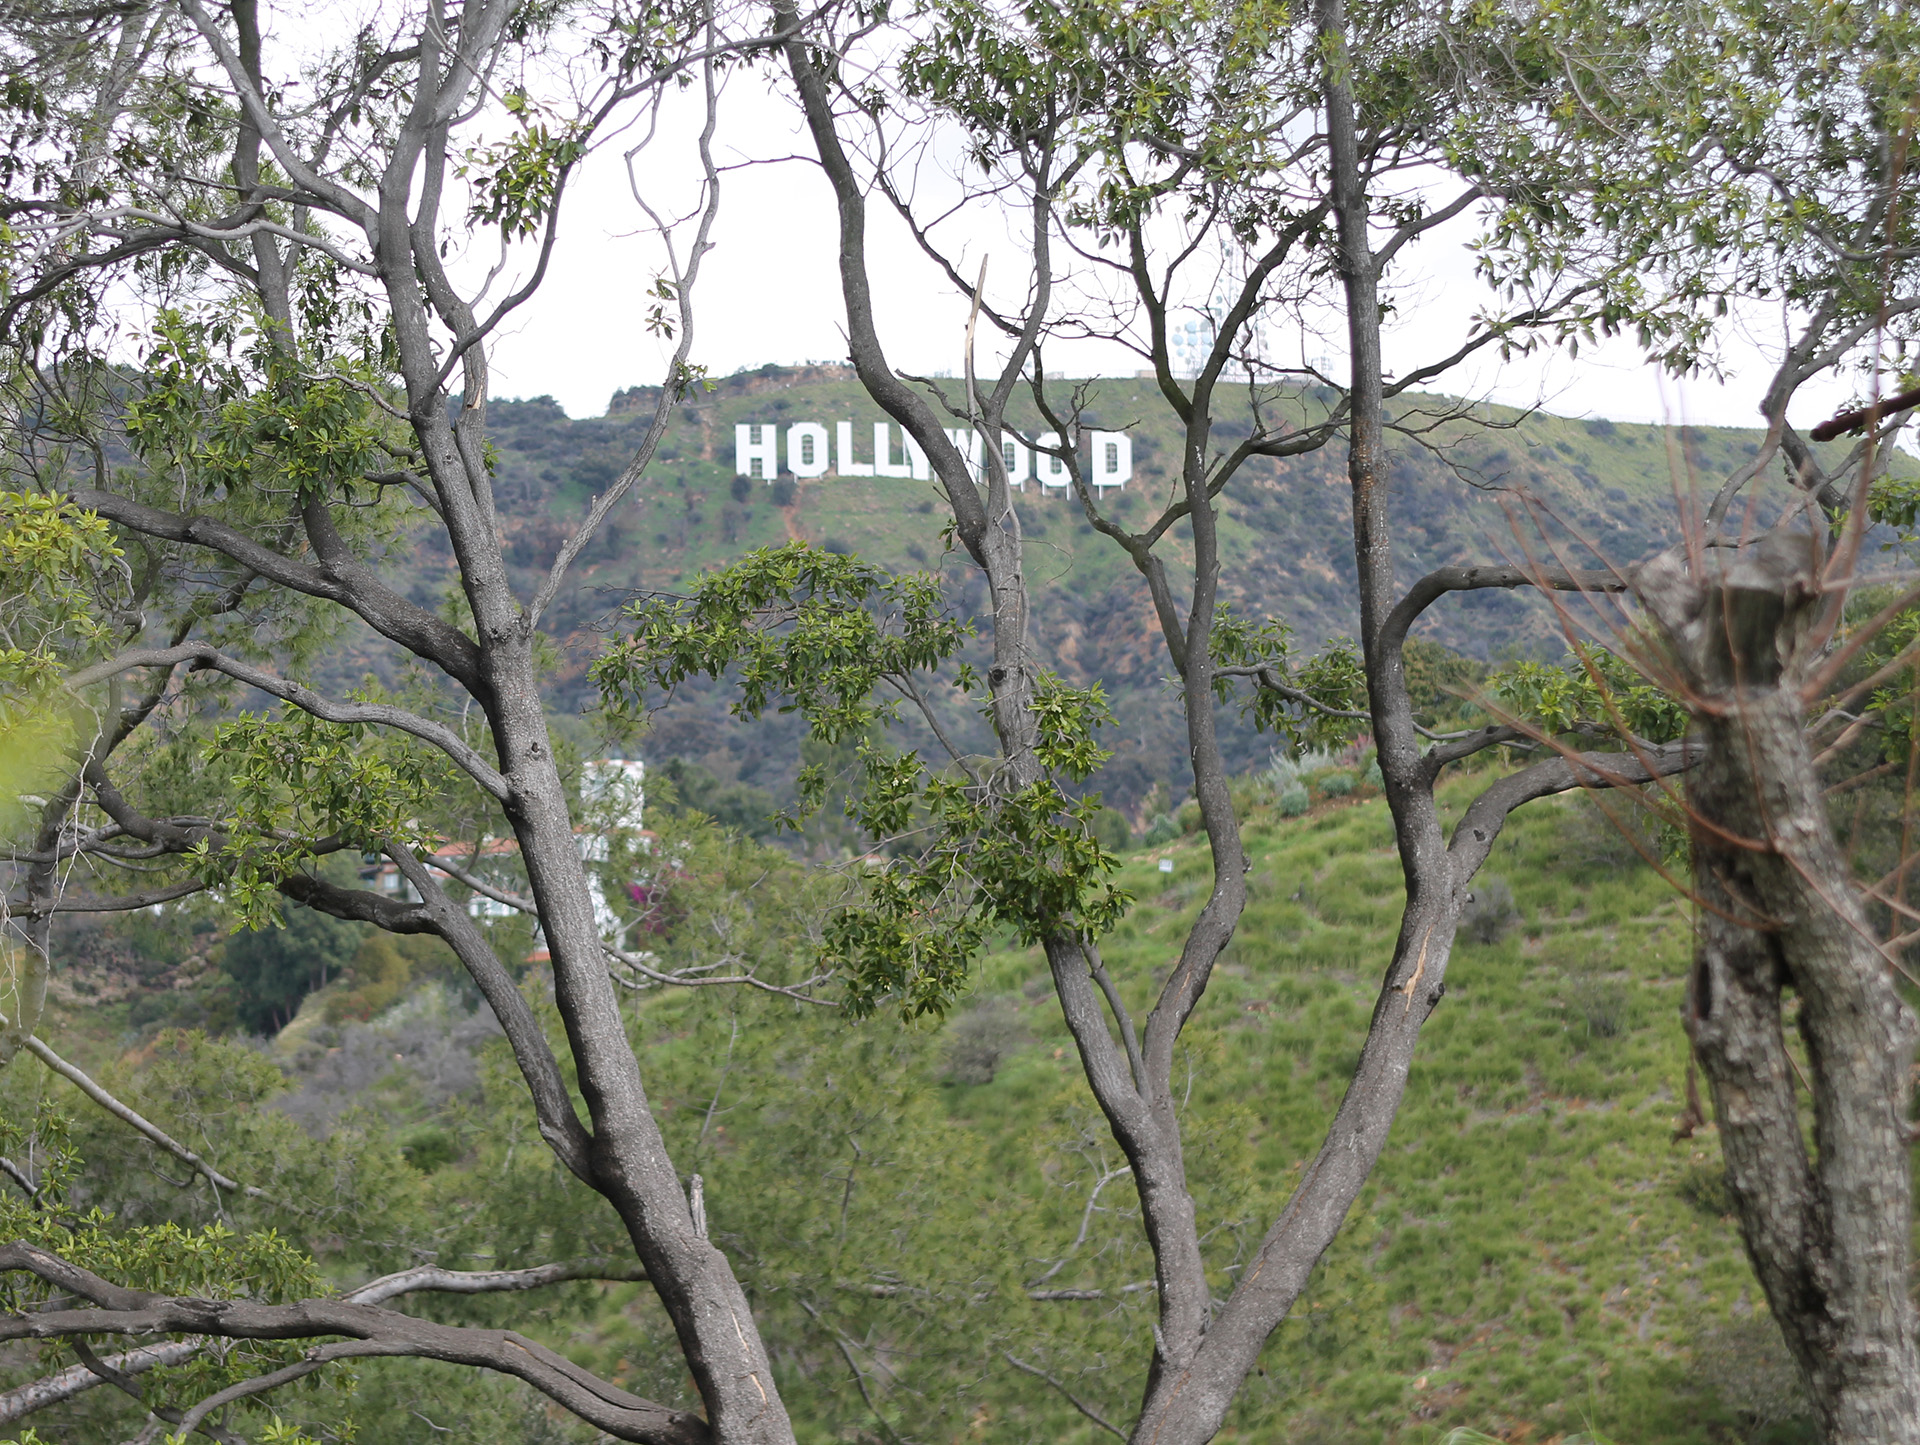 medium resolution of hollywood sign martin pierce jpg